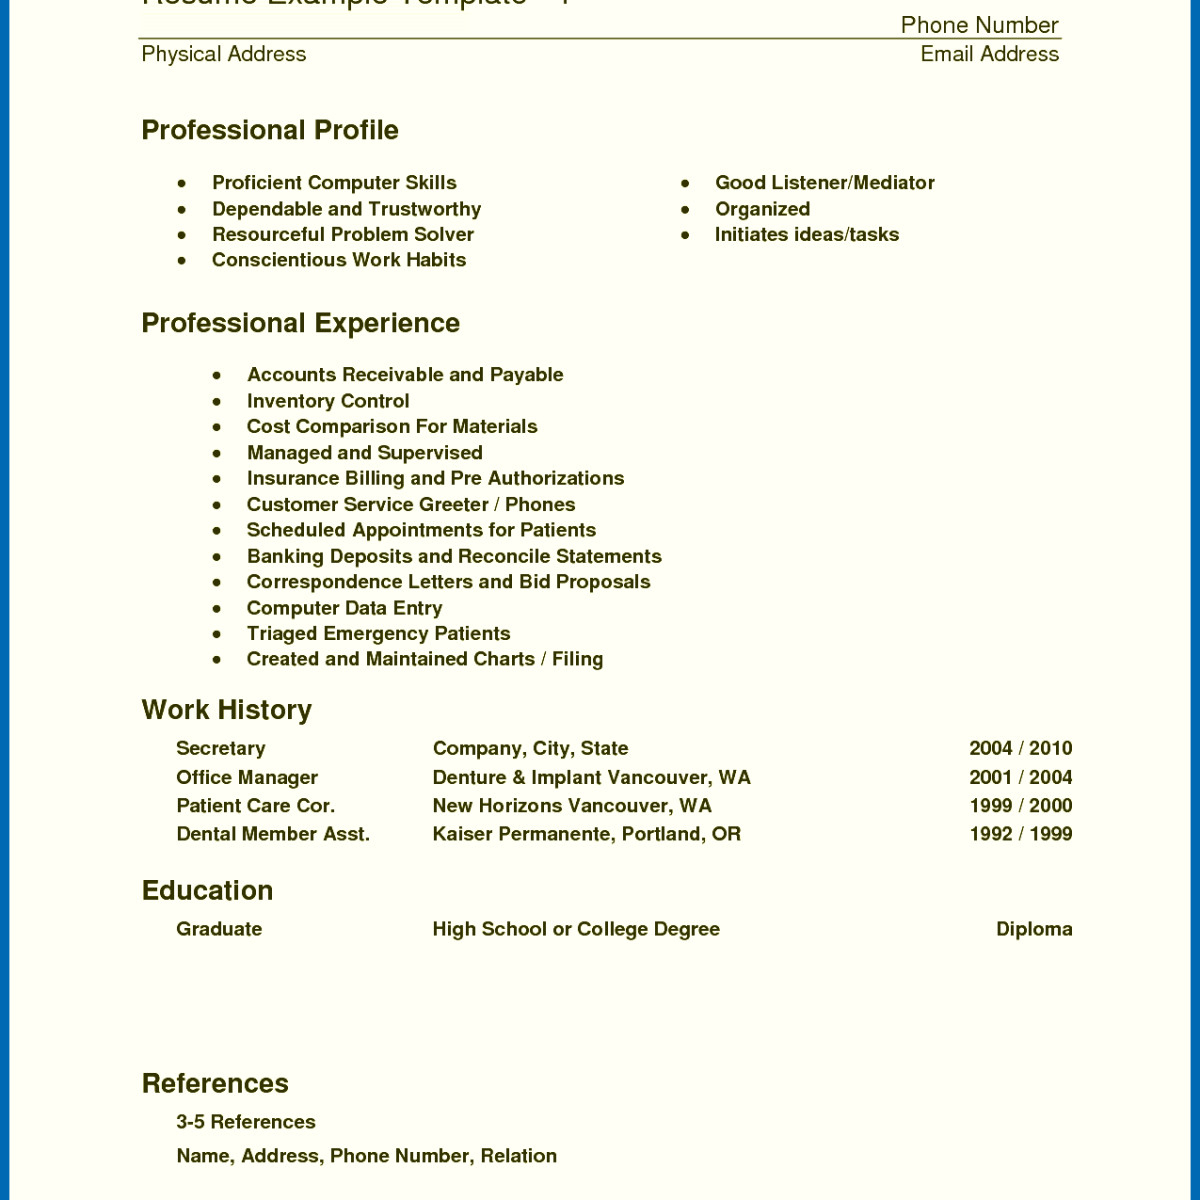 Skills for Resume Customer Service - Resume Medical assistant Examples Awesome Resume Skills for Customer